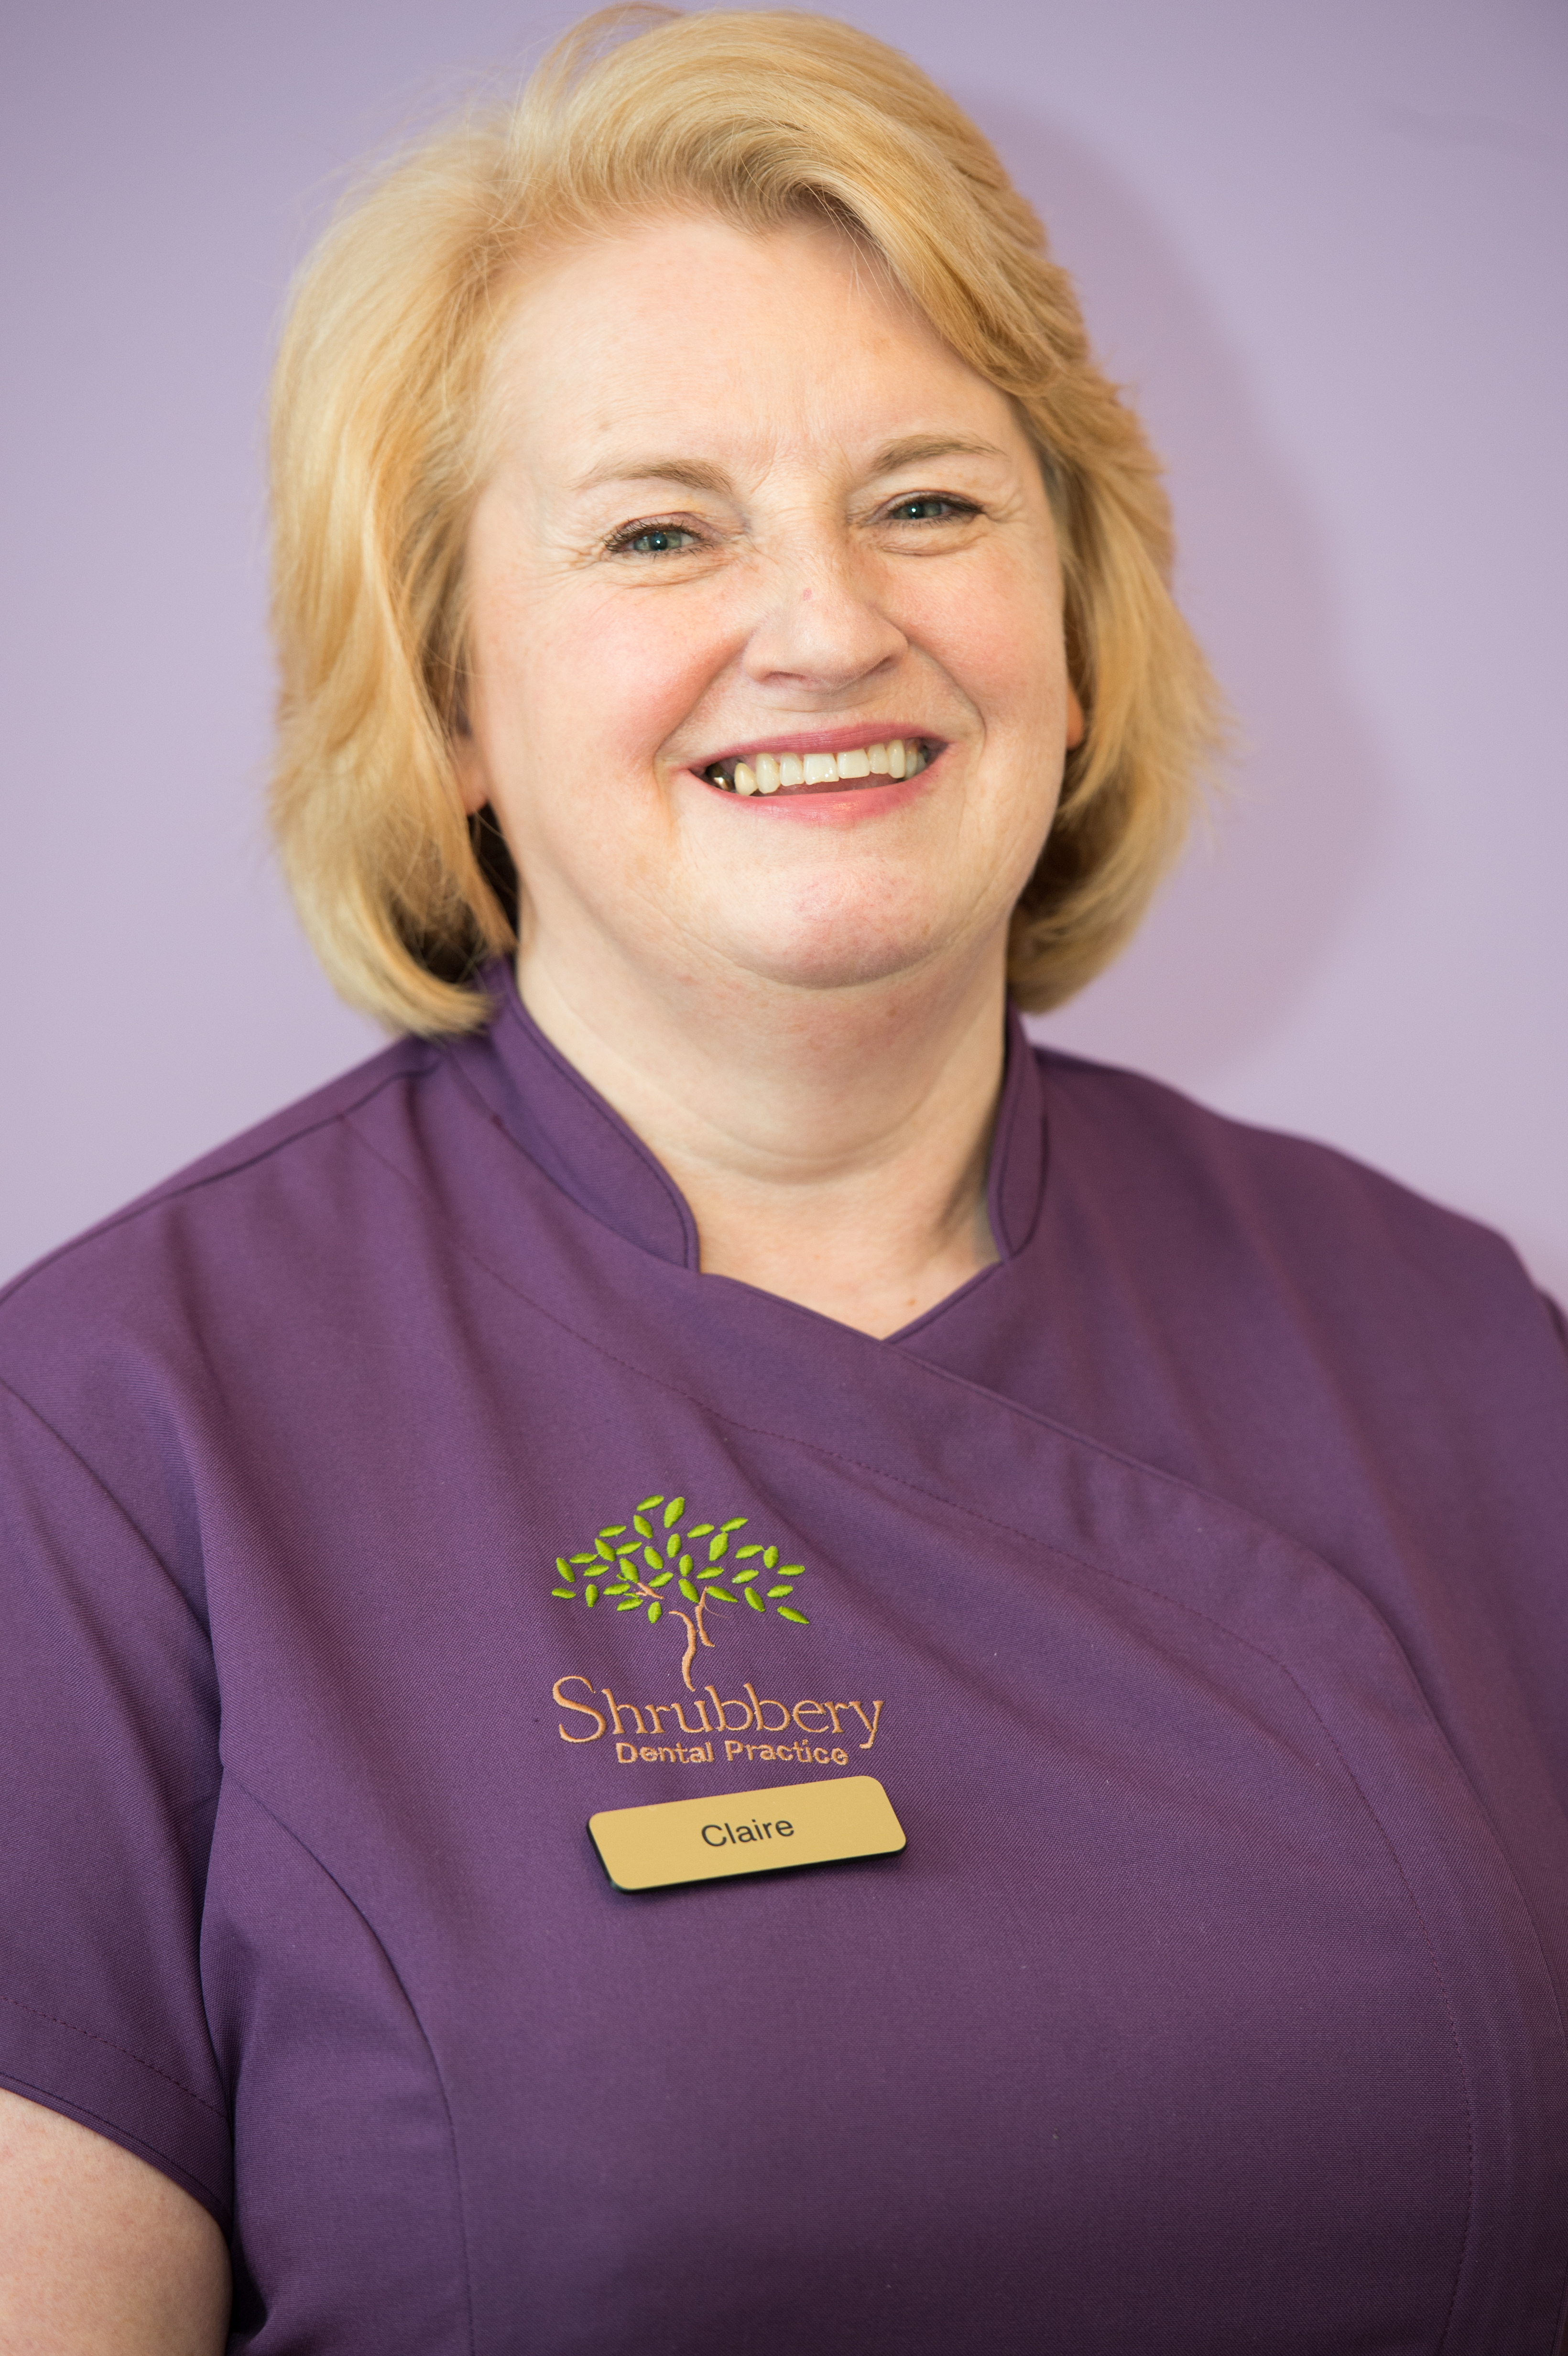 Claire Joined The Shrubbery Dental Practice In 2012 After Working In Retail For Many Years And Is Now A Dedicated Member Of Our Team